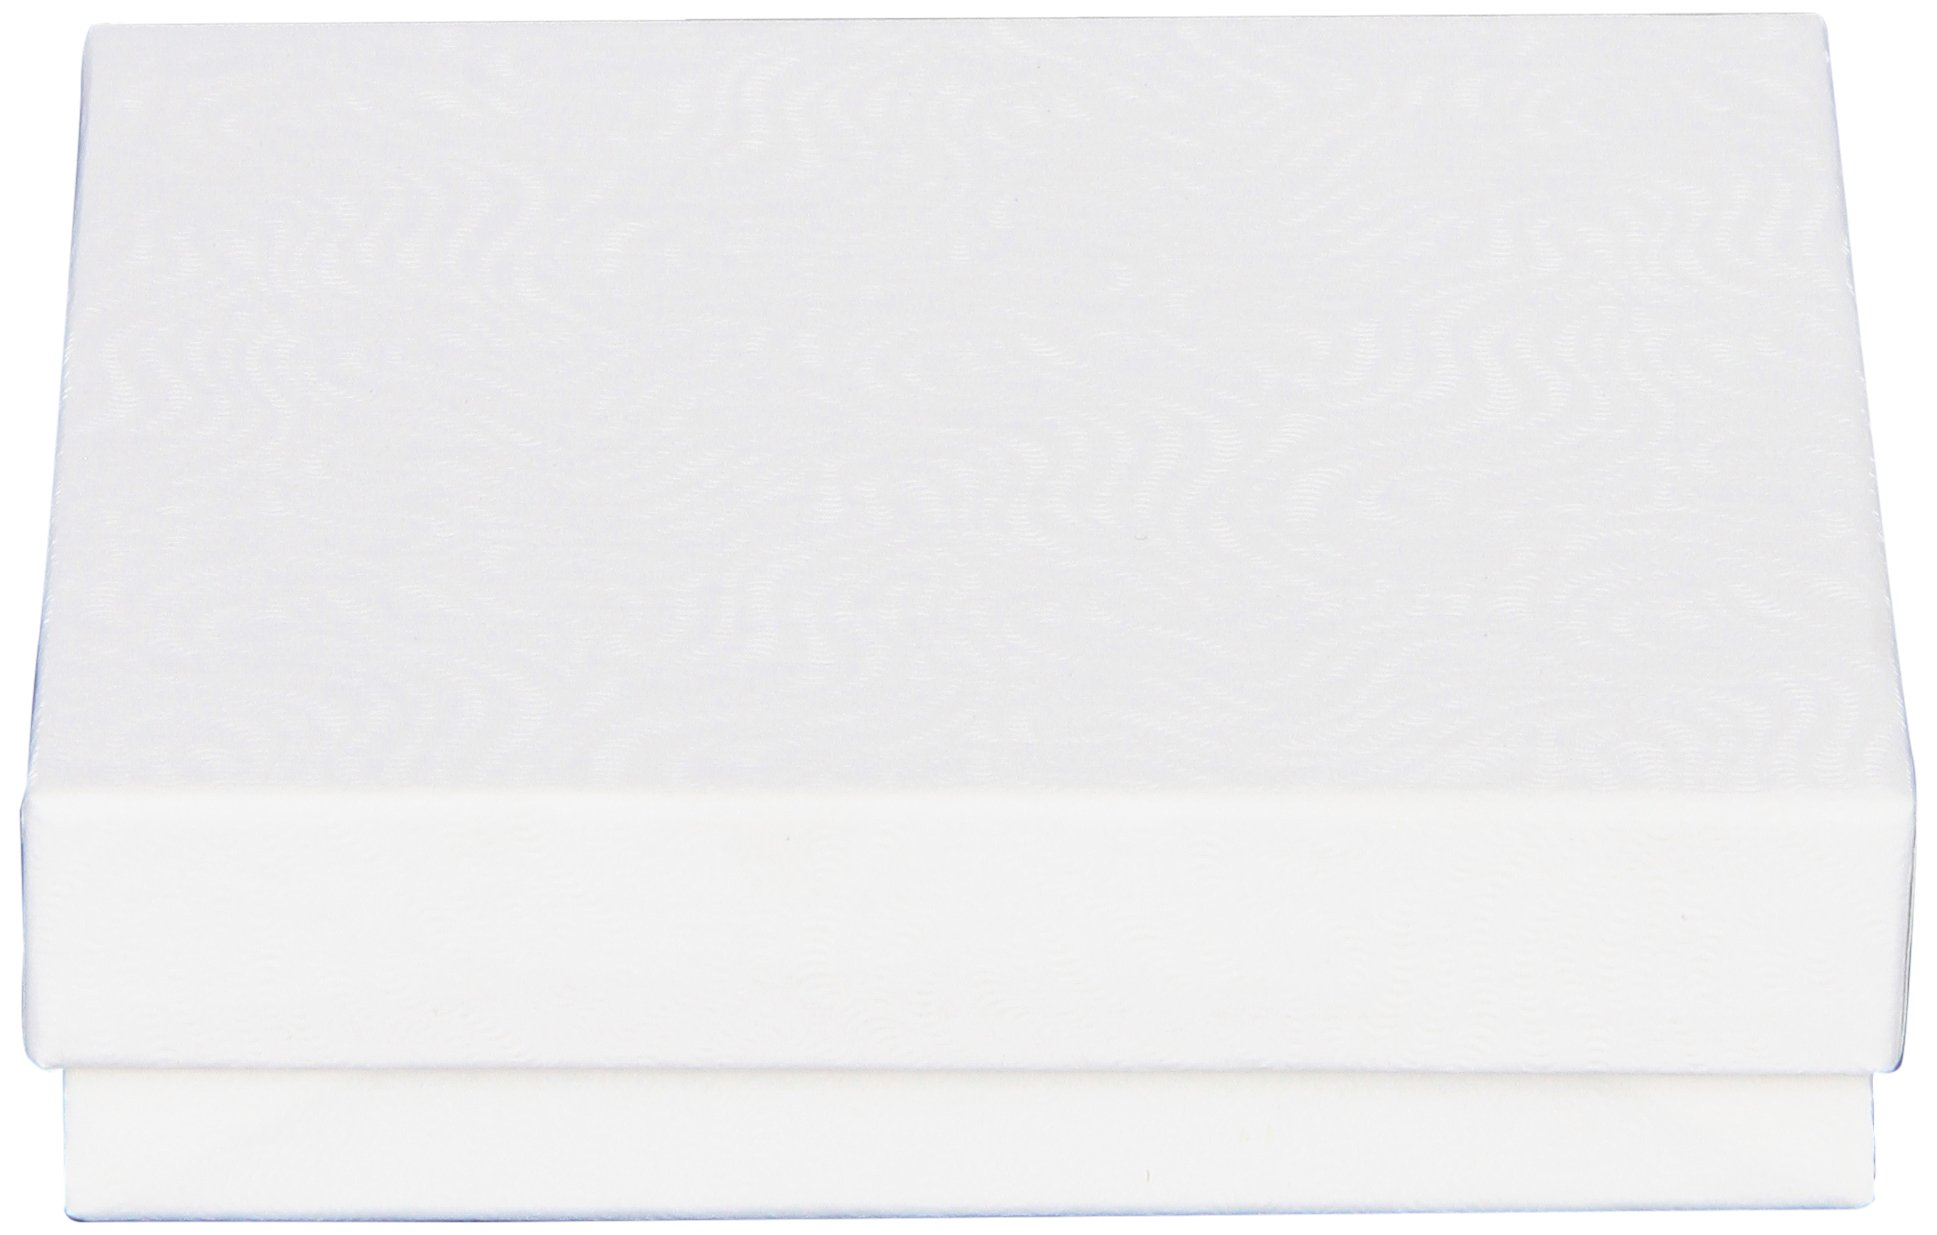 The Packaging Trust Jewelry Boxes, , 3-1/2'' L x 3-1/2'' W x 7/8'' H, White Swirl, 100 Boxes